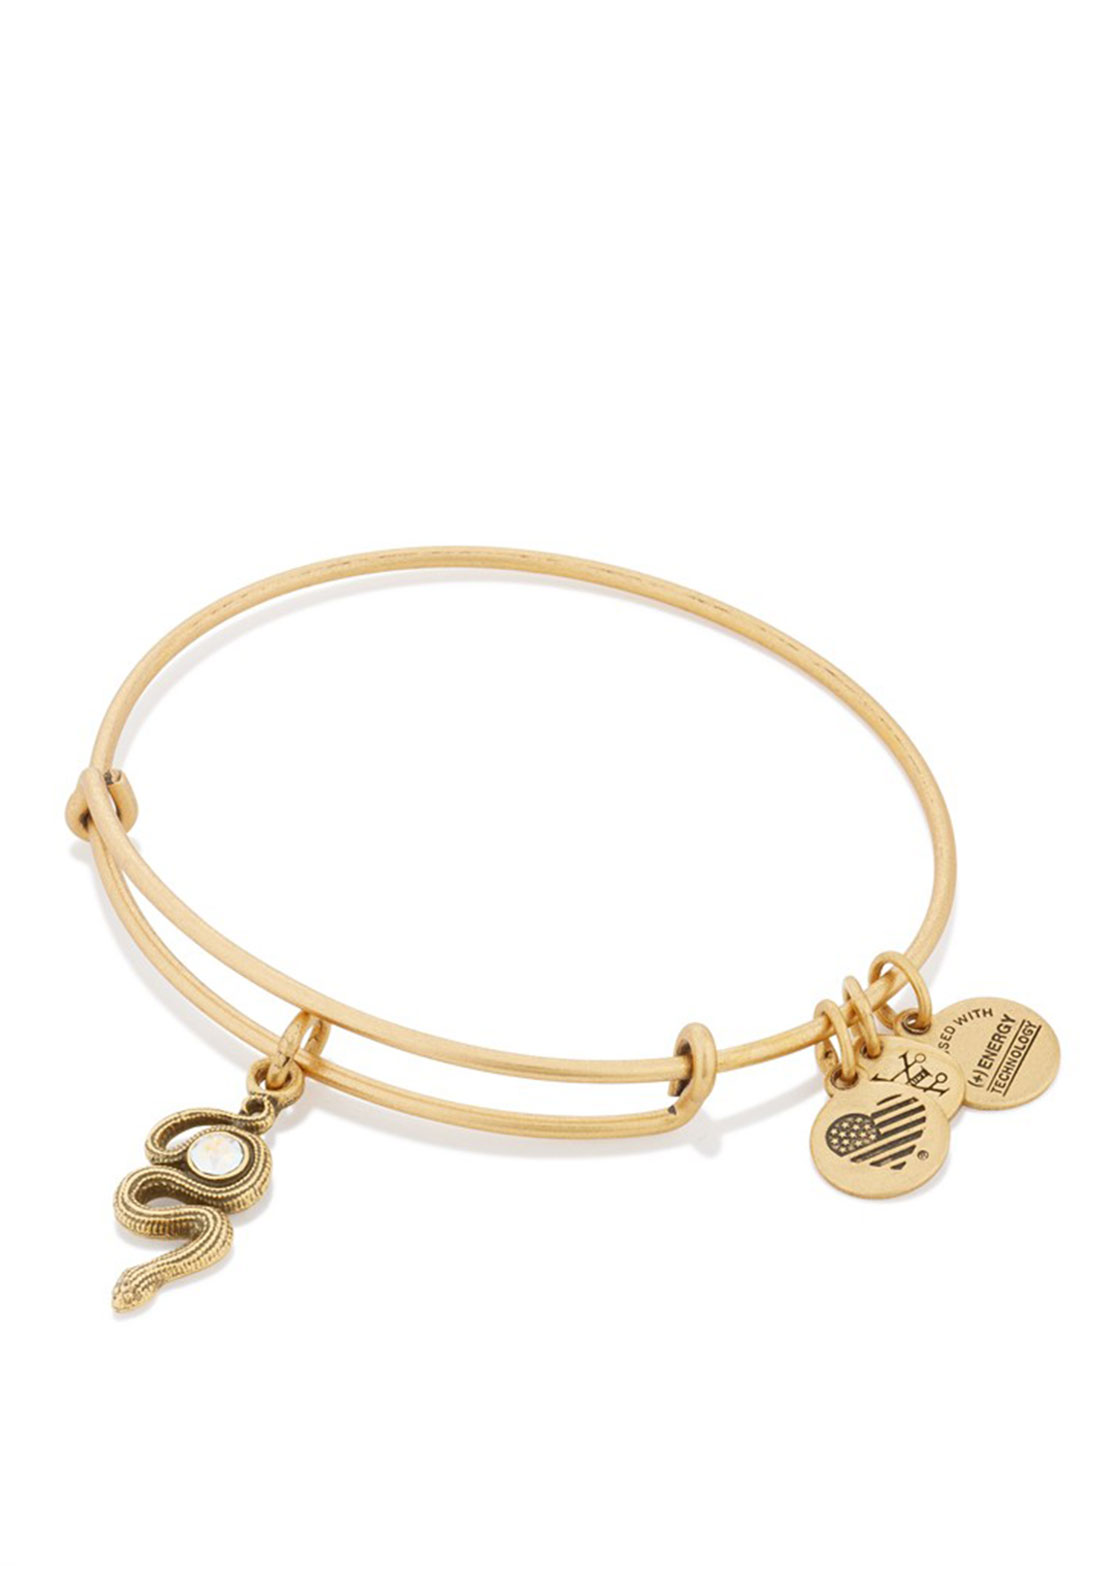 Alex and Ani Snake Charm Bracelet, Gold